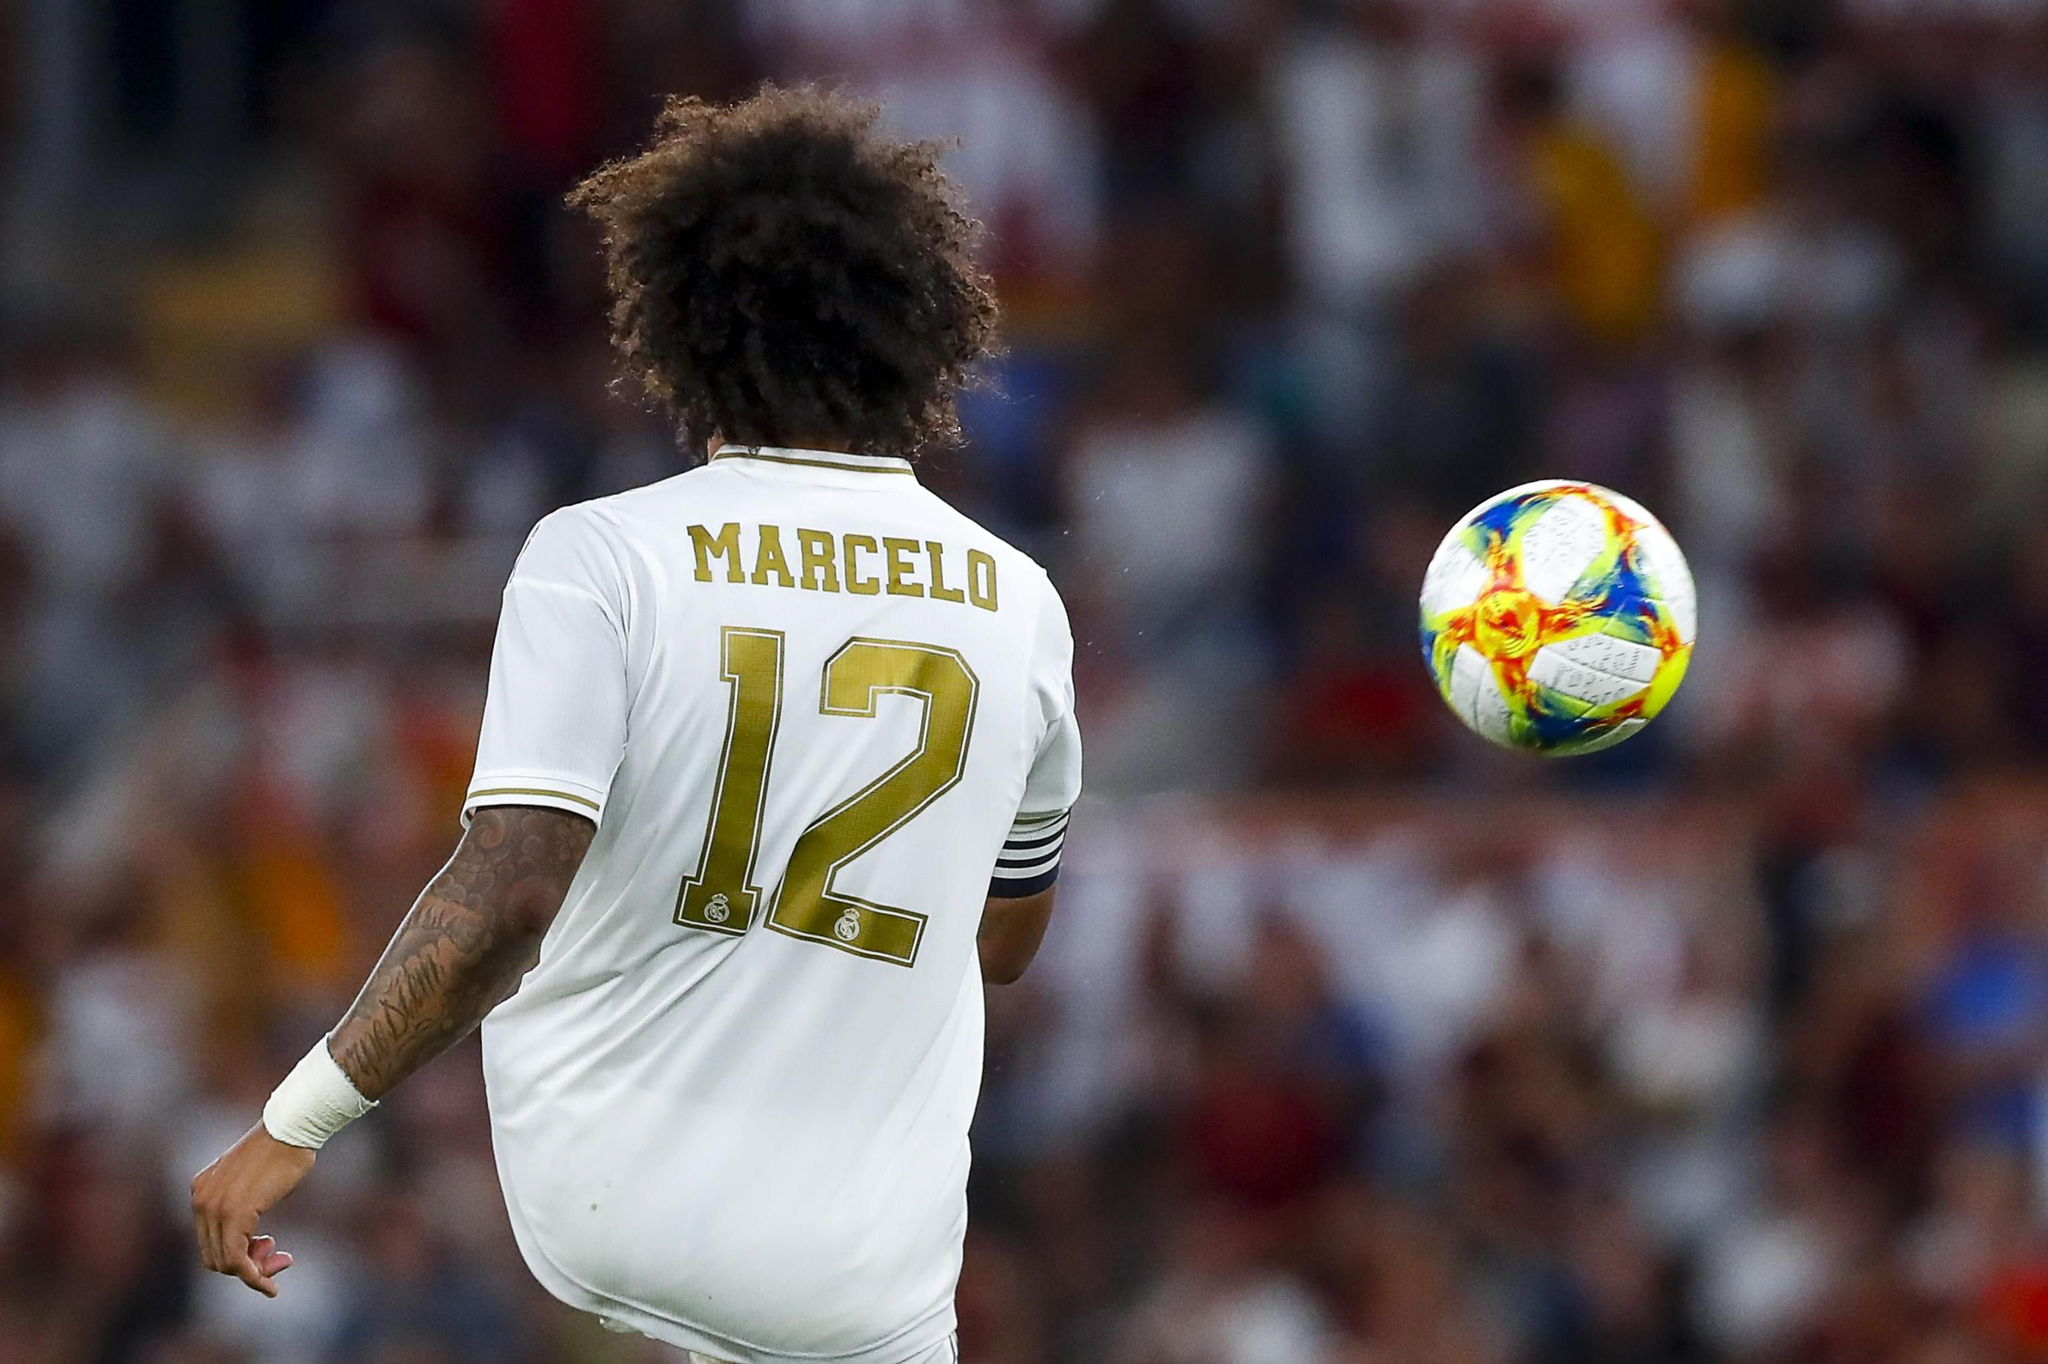 Rome (Italy), 07/08/2019.- Real Madrids <HIT>Marcelo</HIT> shows his dejection during the international friendly soccer match AS <HIT>Roma</HIT> vs Real Madrid CF at Olimpico stadium in Rome, Italy, 11 August 2019. (Futbol, Amistoso, Italia, <HIT>Roma</HIT>) EFE/EPA/ANGELO CARCONI